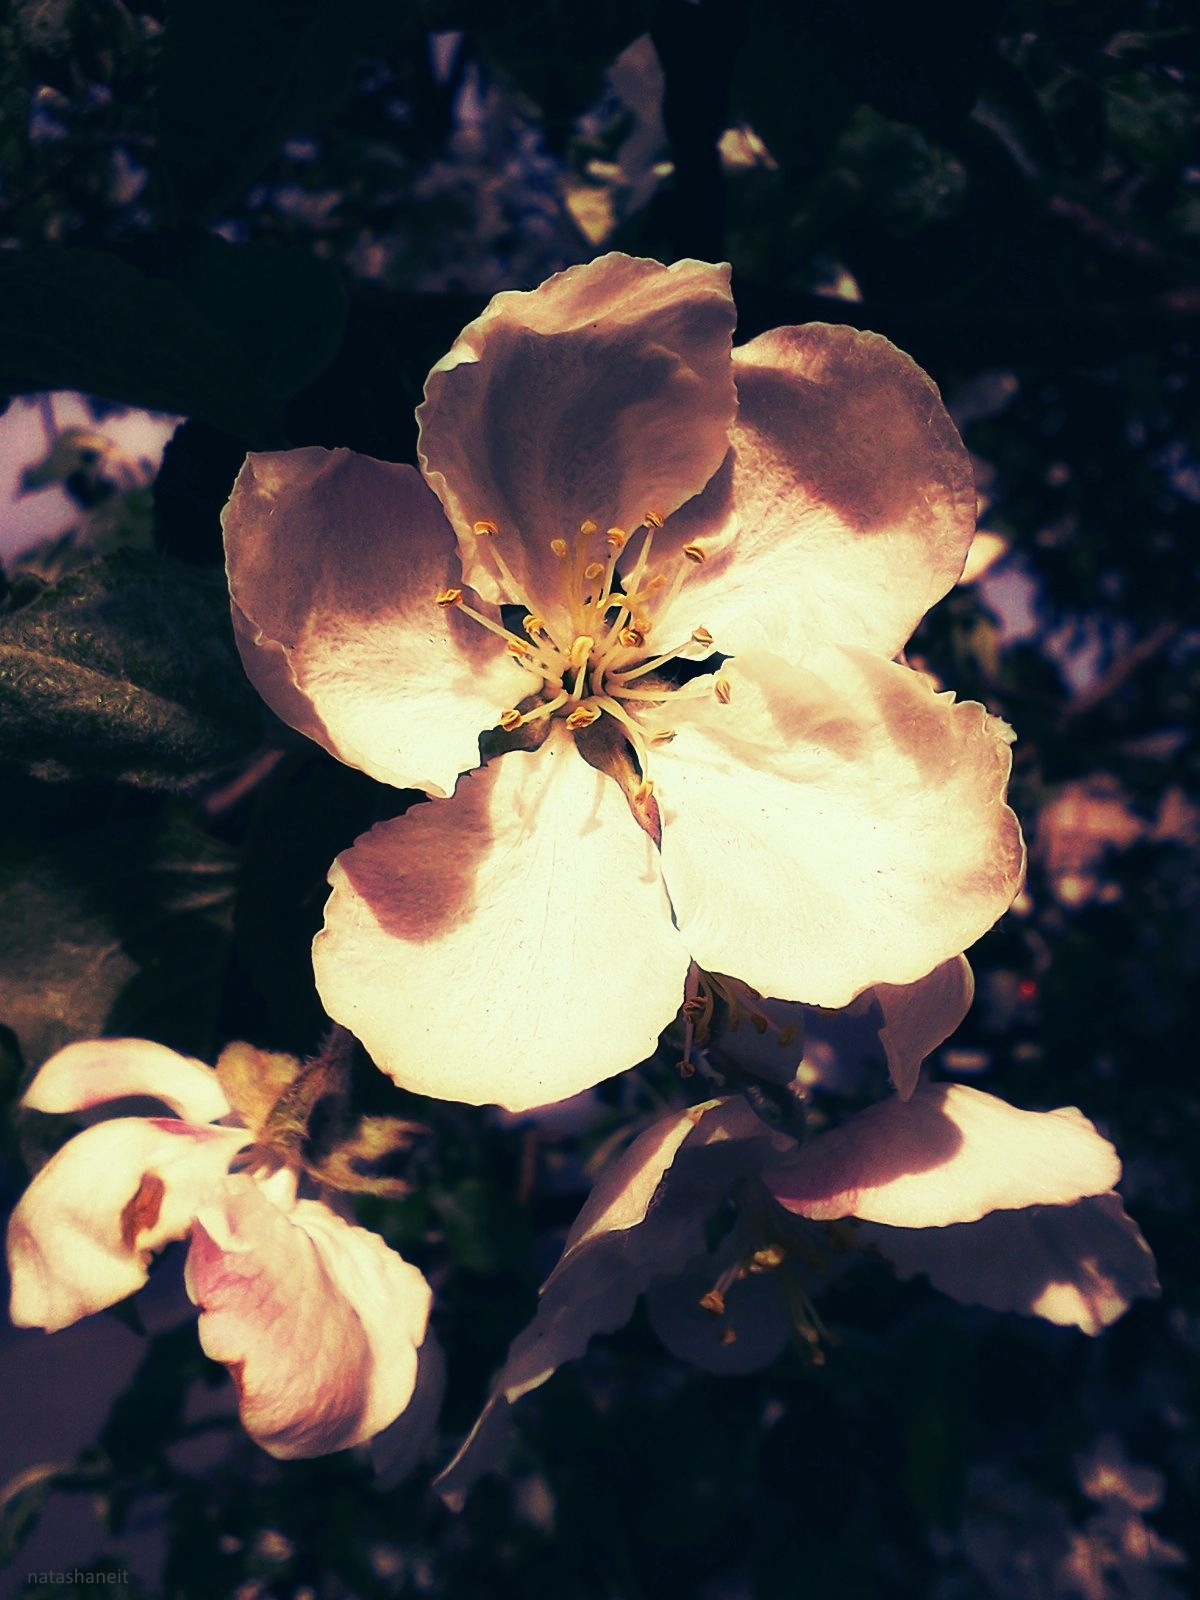 Blooming of an apple tree by natashaneit